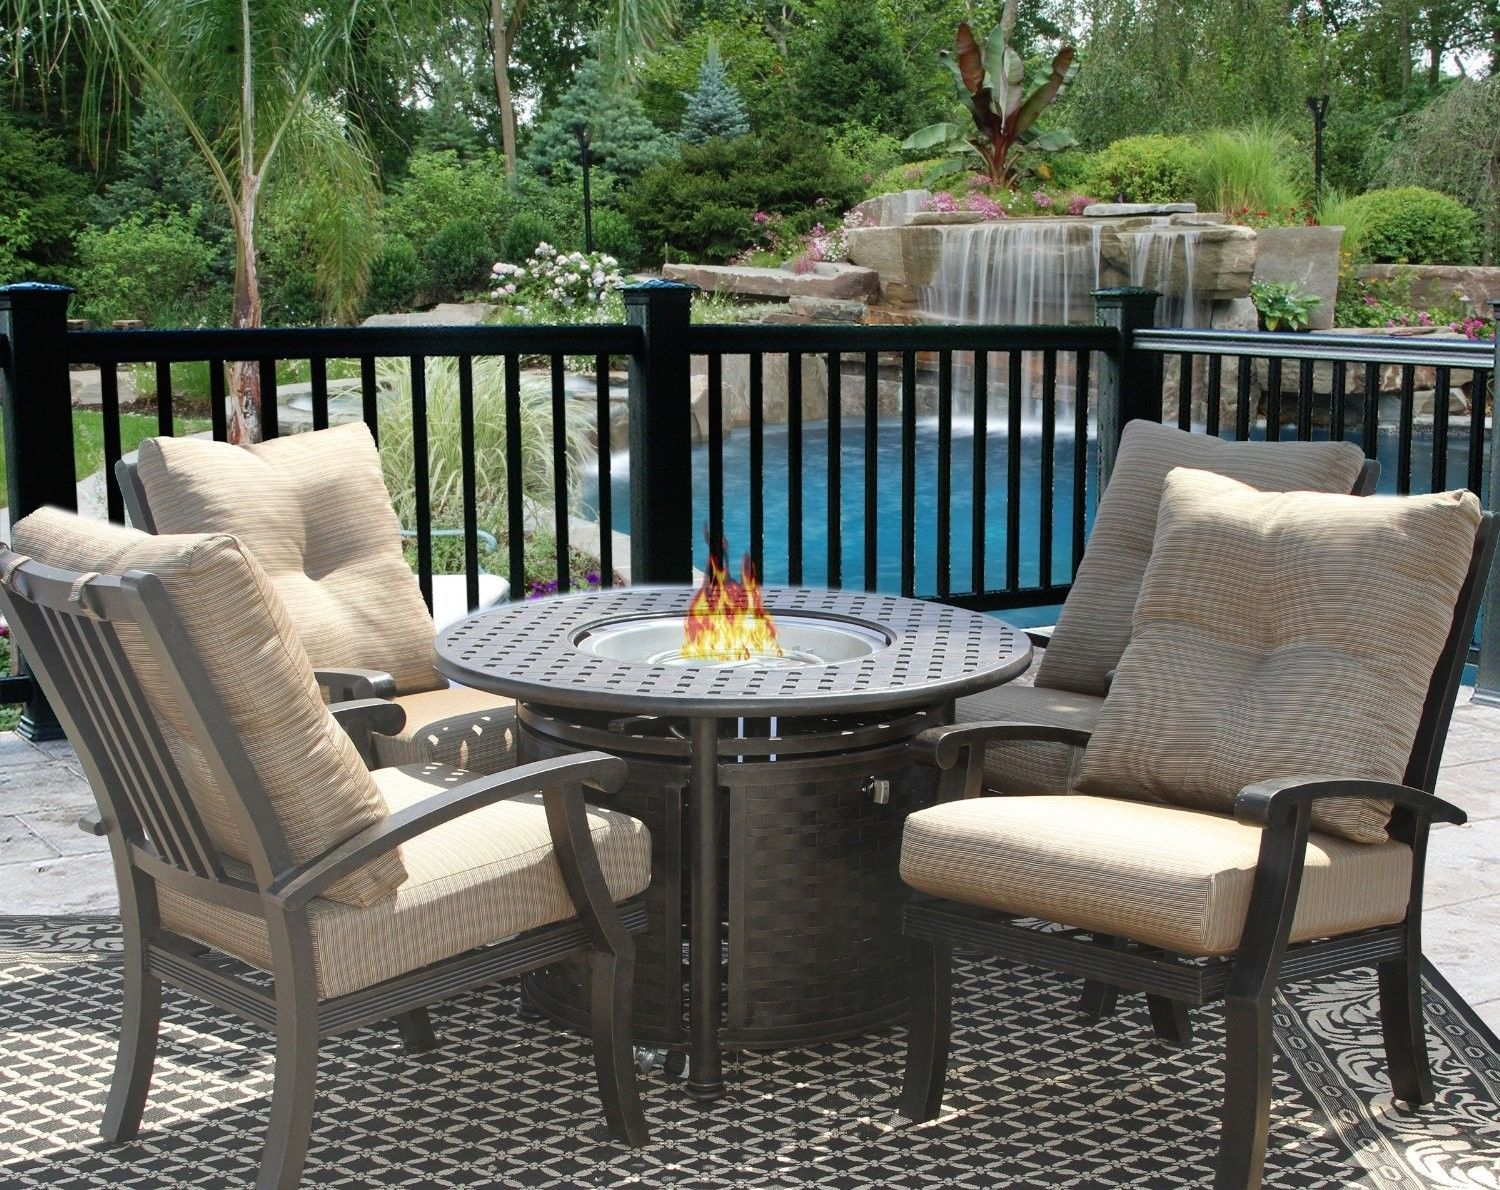 """PATIO 5PC DINING SET FOR 4 PERSON WITH 42"""" ROUND FIRE TABLE SERIES 7000"""